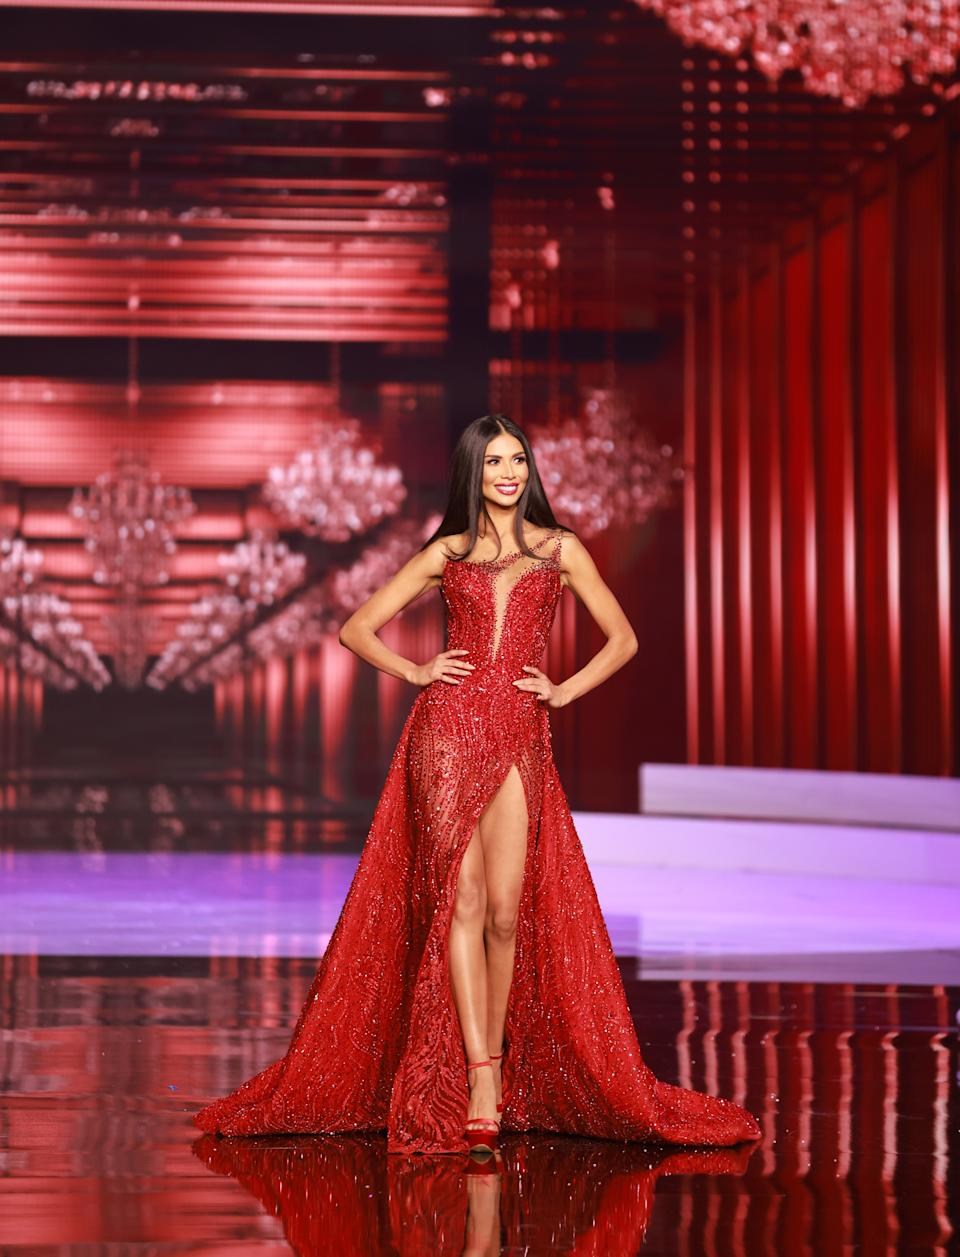 <p>Ivonne Cerdas, Miss Universe Costa Rica 2020 competes on stage as a Top 10 finalist in an evening gown of her choice during the 69th Miss Universe Competition on May 16, 2021 at the Seminole Hard Rock Hotel & Casino in Hollywood, Florida airing LIVE on FYI and Telemundo. Contestants from around the globe have spent the last few weeks touring, filming, rehearsing and preparing to compete for the Miss Universe crown. (PHOTO: Miss Universe)</p>